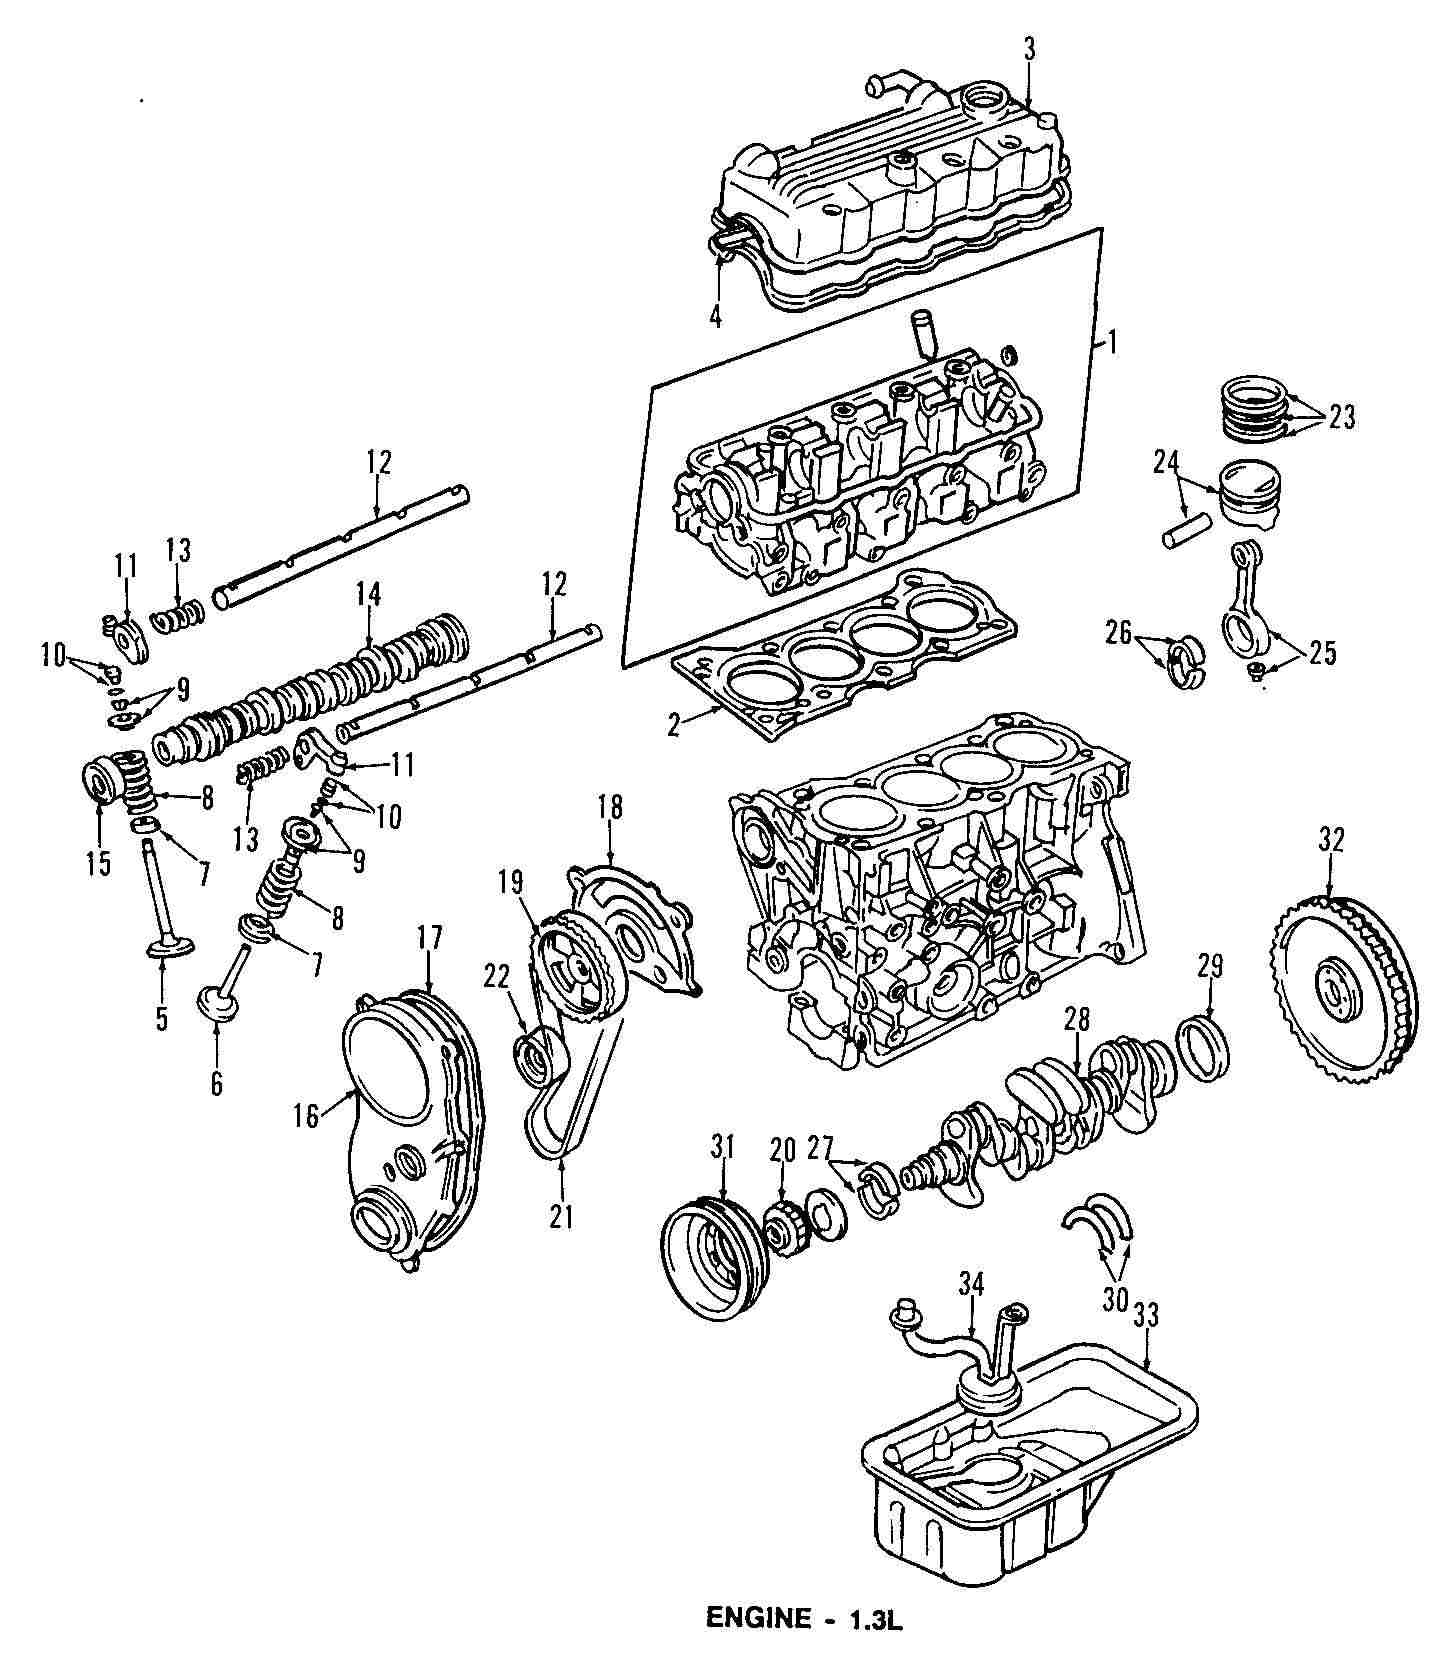 1995 xj6 engine diagram 1996 jaguar xj6 engine diagram automotive 1999 Dodge Durango Front End hight resolution of 1994 geo prizm engine diagram wiring diagram todays jaguar xj6 engine diagram 1995